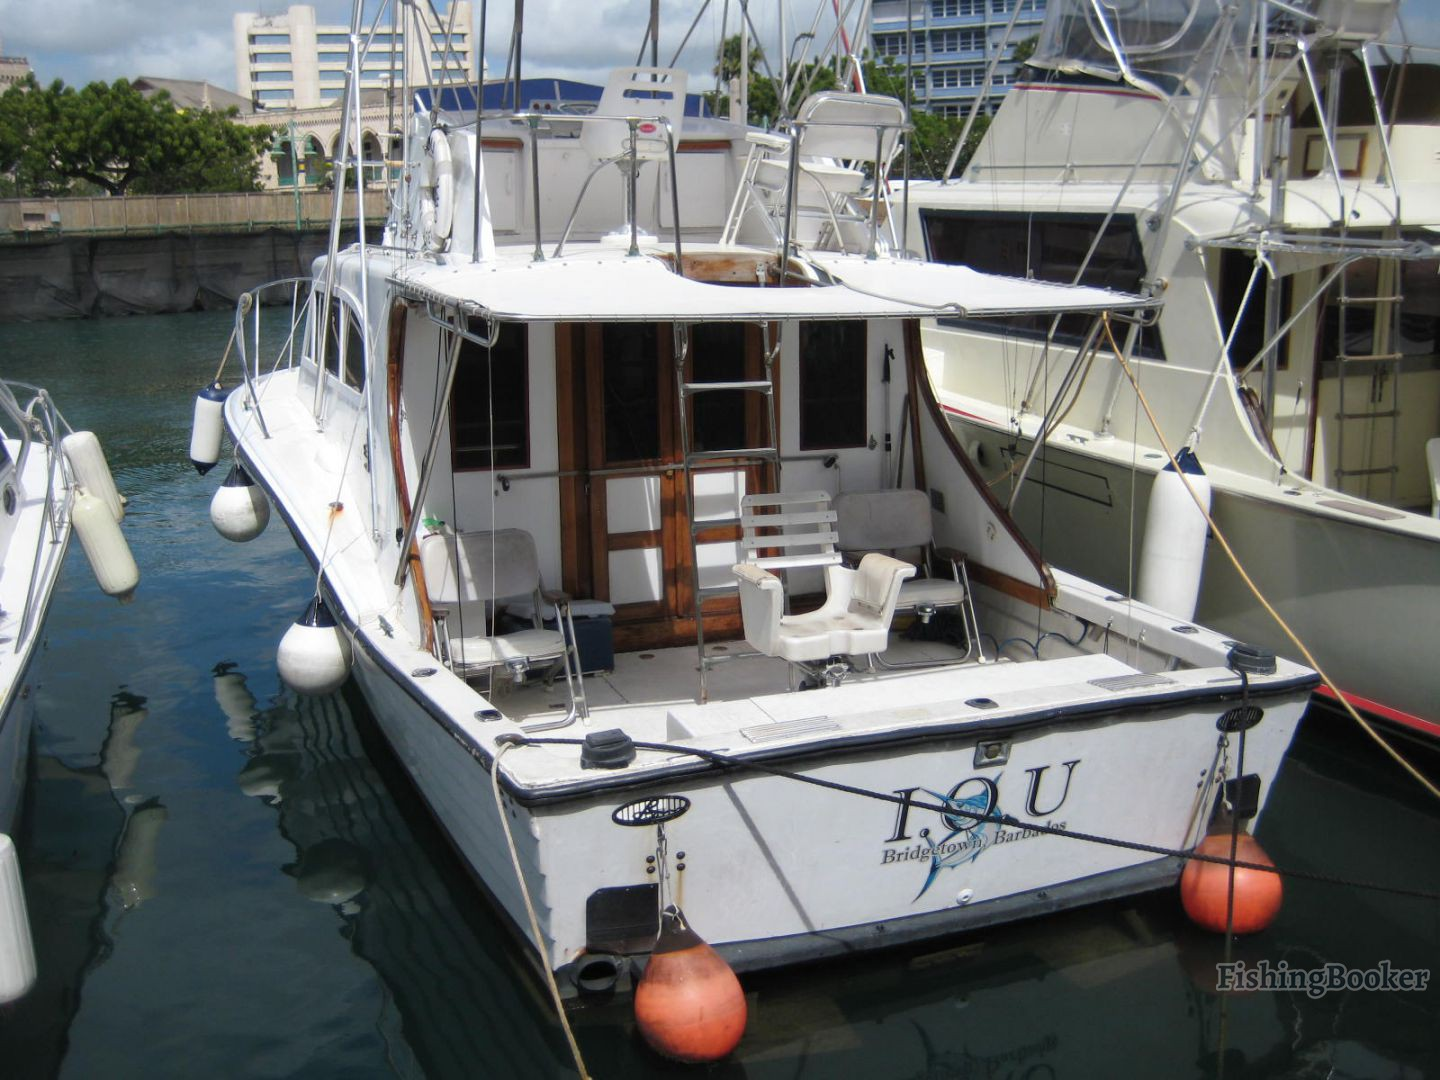 Iou fishing charters barbados bridgetown barbados for Fisher fish chicken indianapolis in